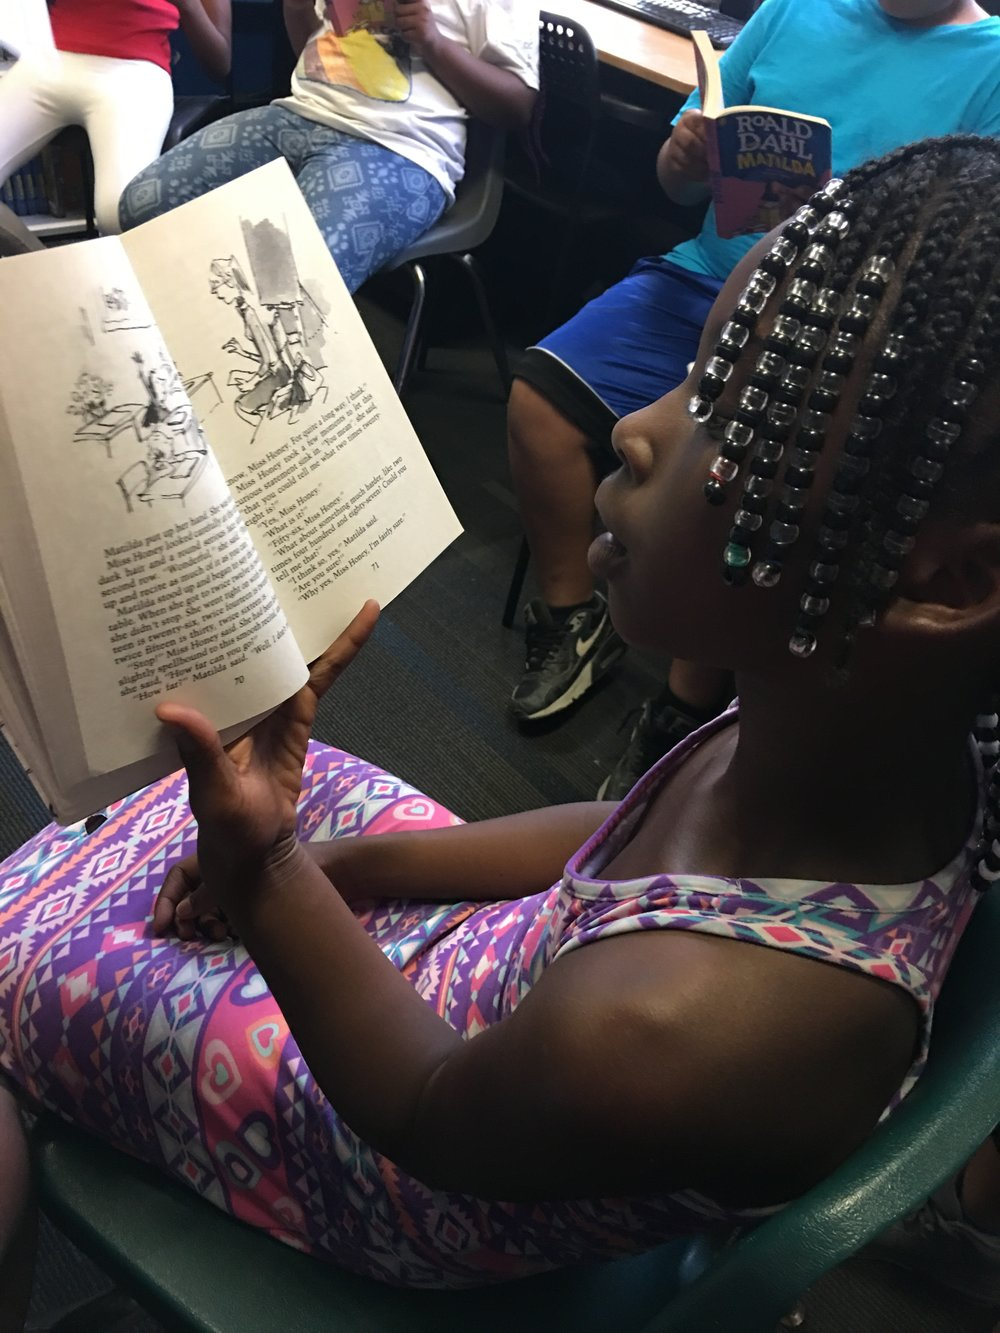 """Our friends at Performing Arts Fort Worth provided our 4th and 5th graders with copies of Roald Dahl's Matilda, along with an accompanying study unit. Then they treated them to the stage production of Matilda at Bass Hall! Talk about bringing stories to life!"